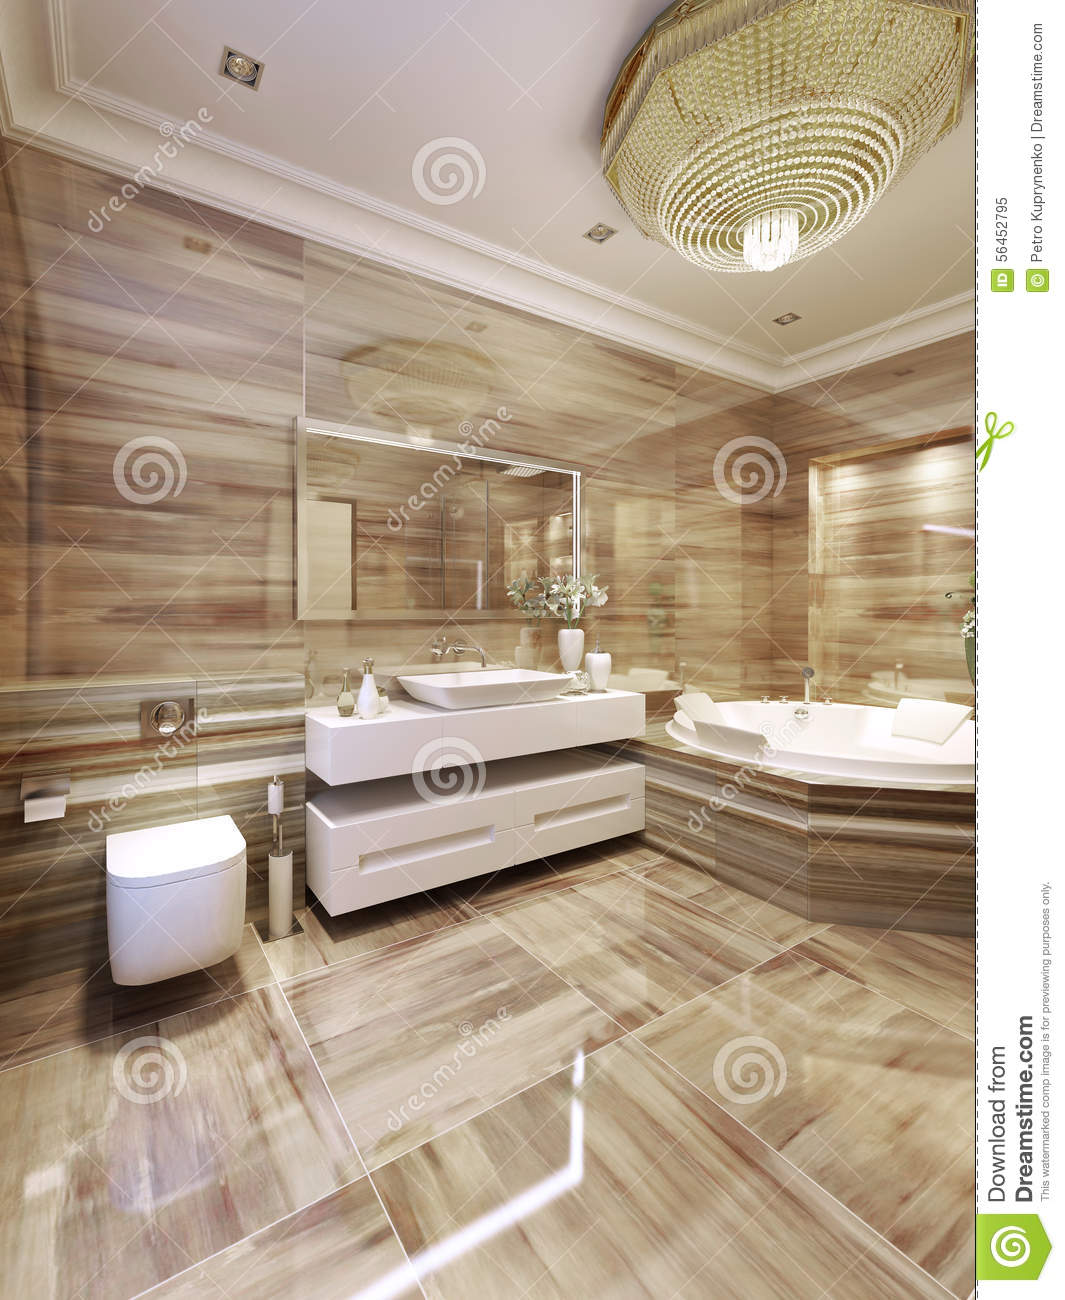 salle de bains moderne avec le jacuzzi image stock image. Black Bedroom Furniture Sets. Home Design Ideas